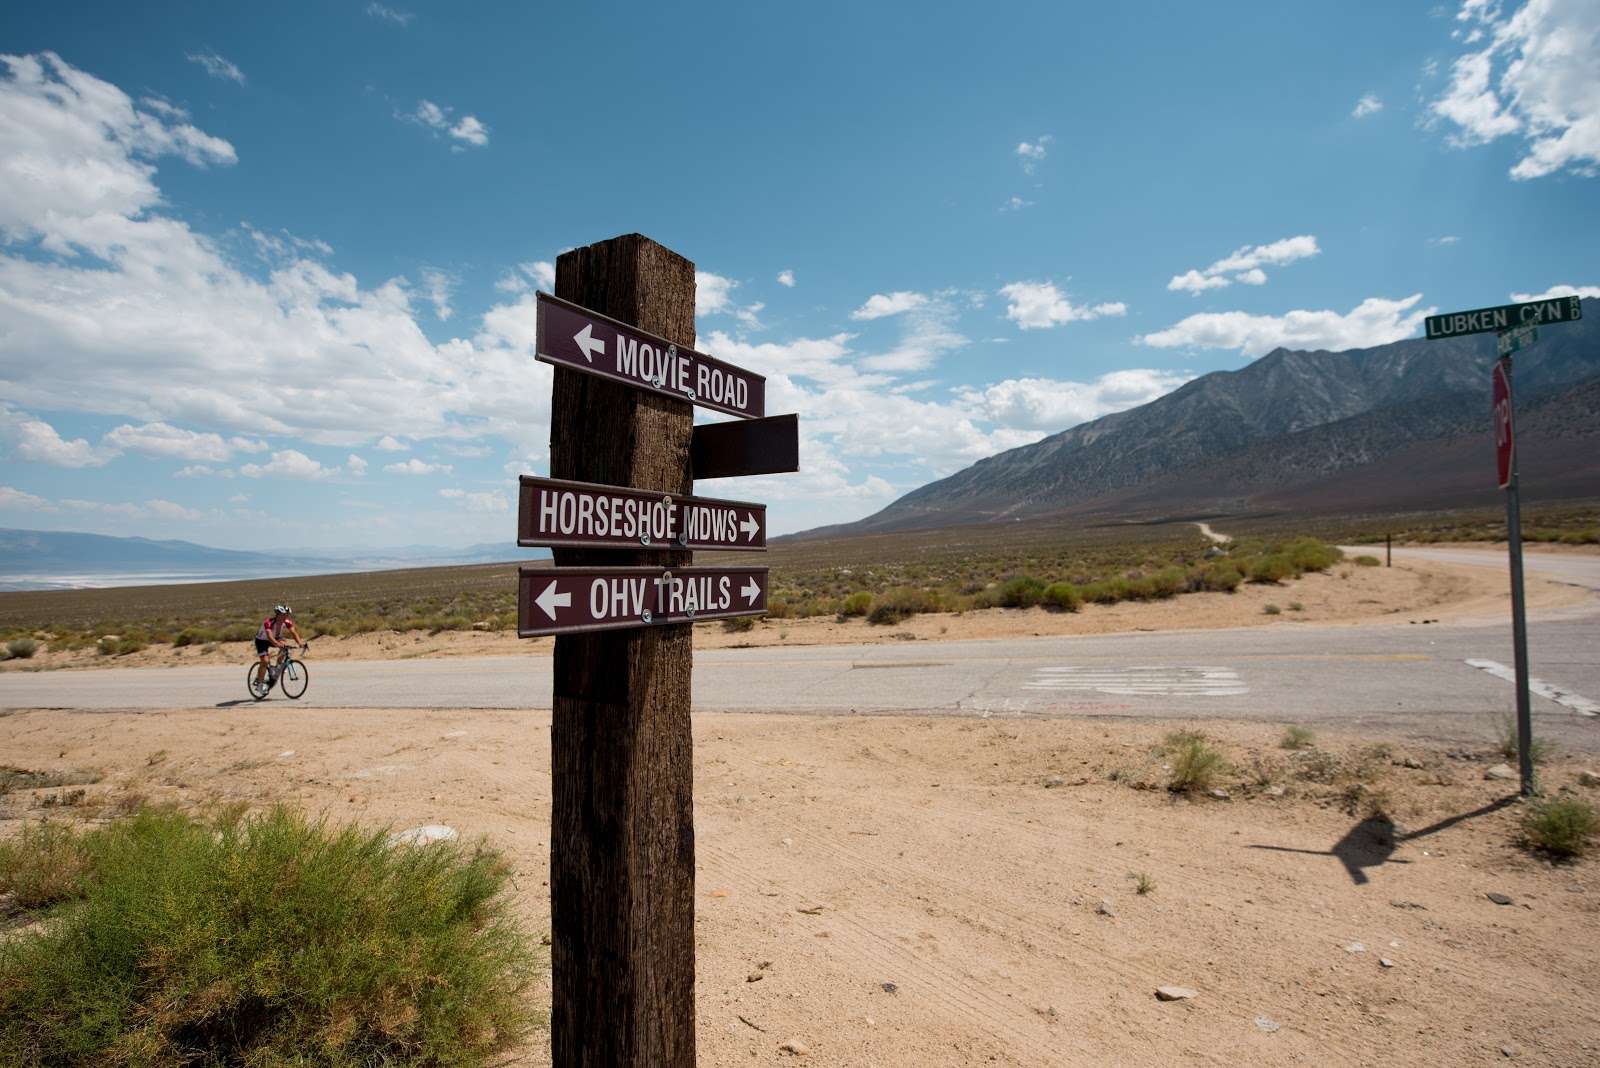 Cyclist riding bike at intersection of Lubken Canyon Road and Horseshoe Meadow Road Big Pine, Owens Valley